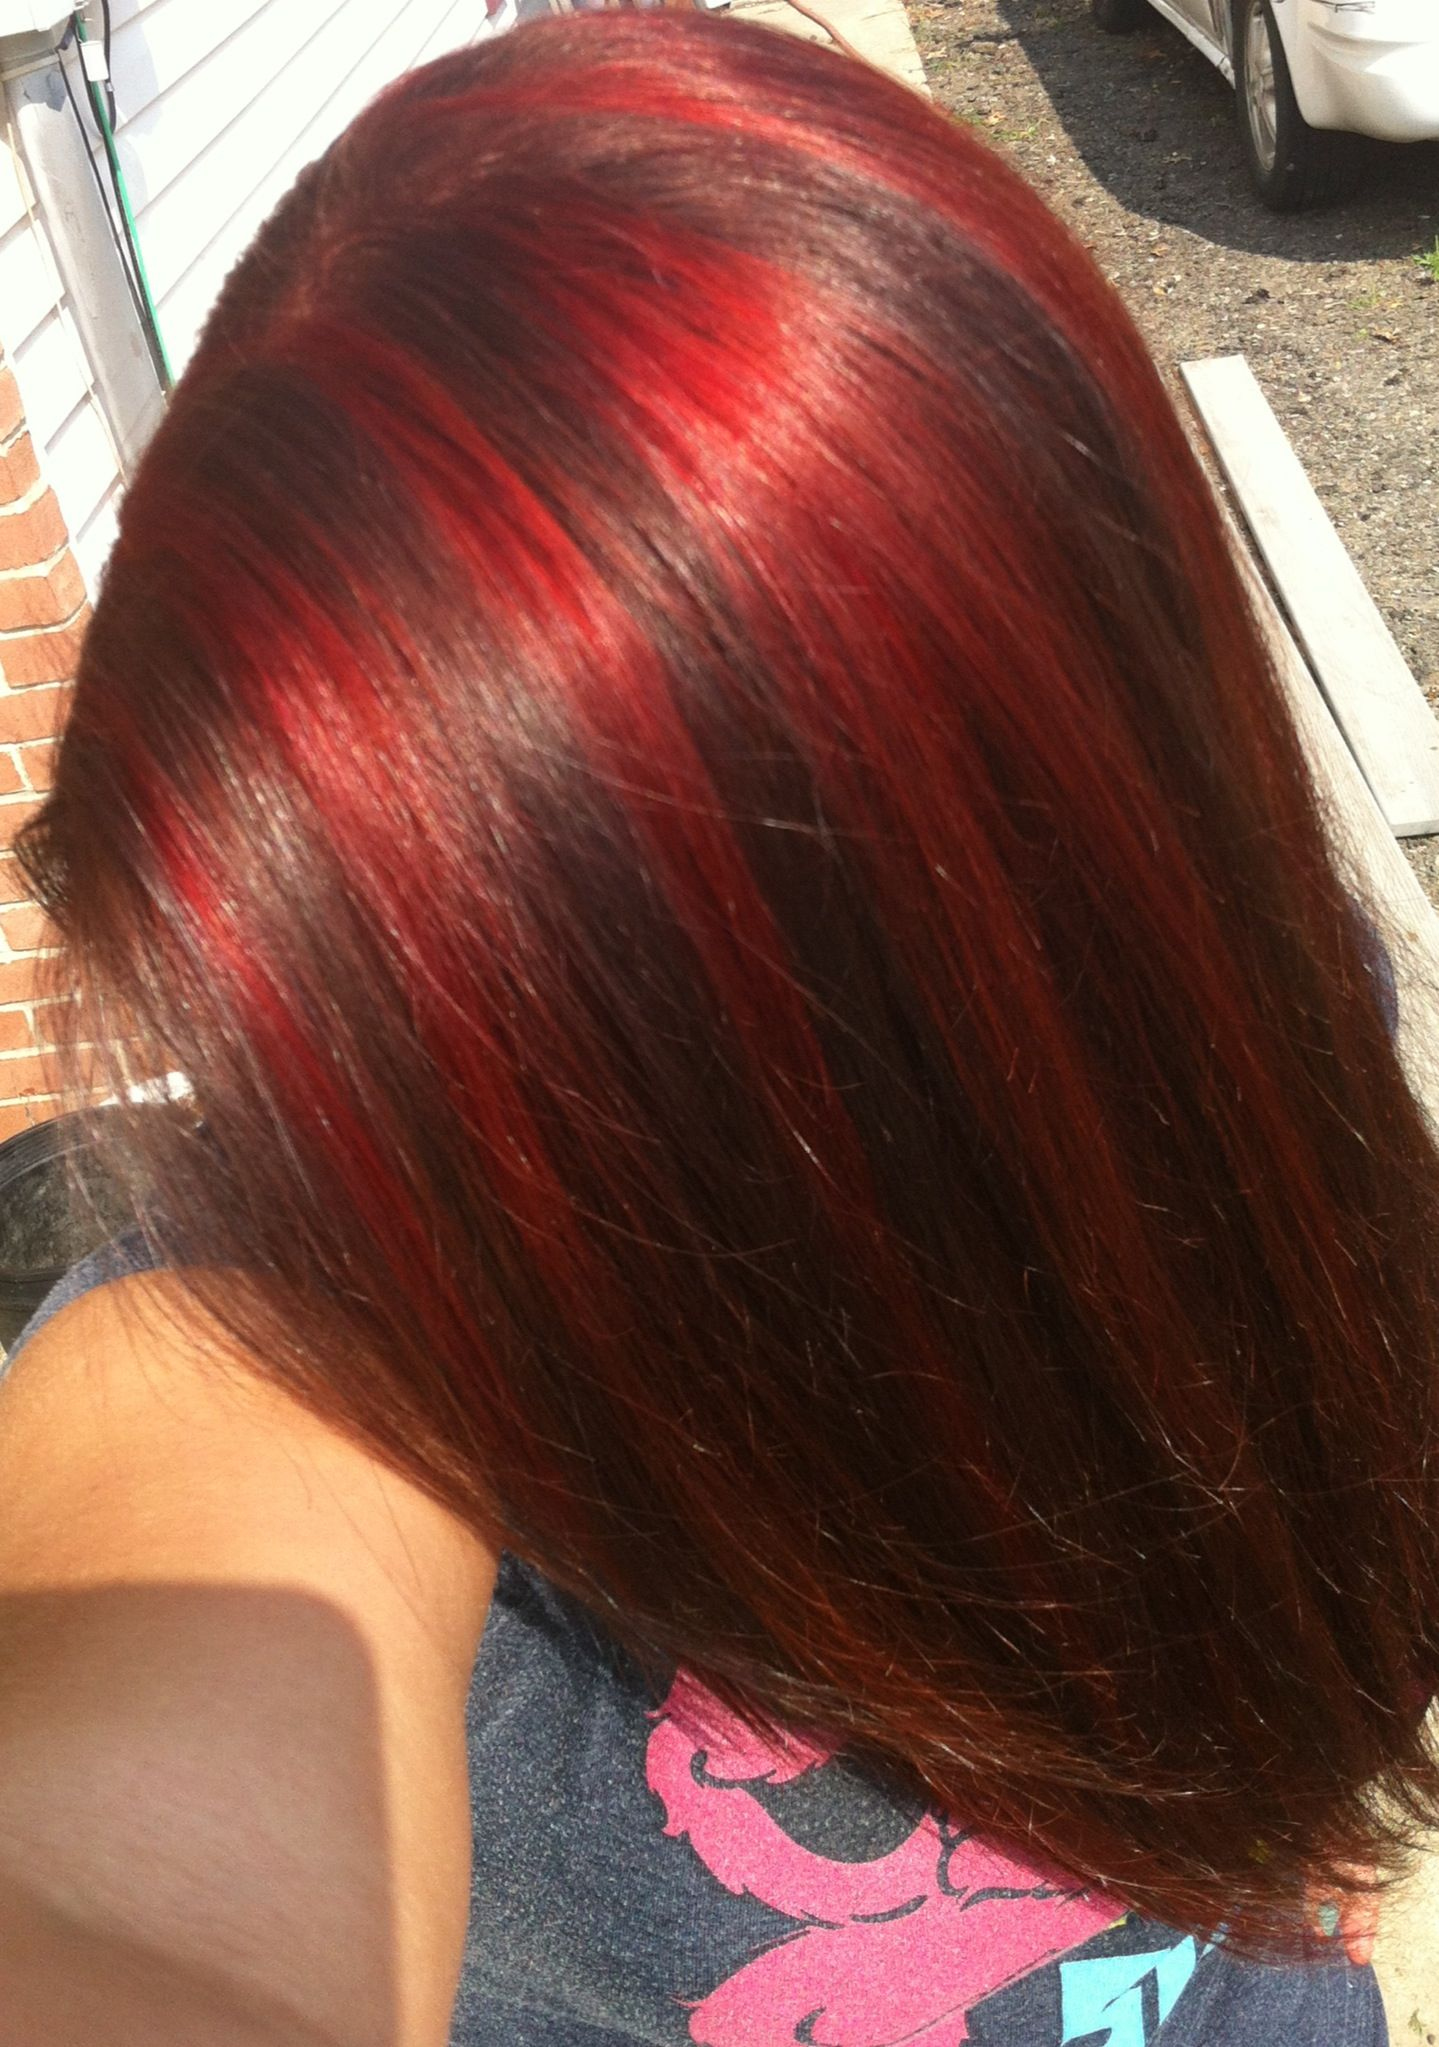 red highlights brown hair love hair and makeup pinterest red highlights brown and hair. Black Bedroom Furniture Sets. Home Design Ideas